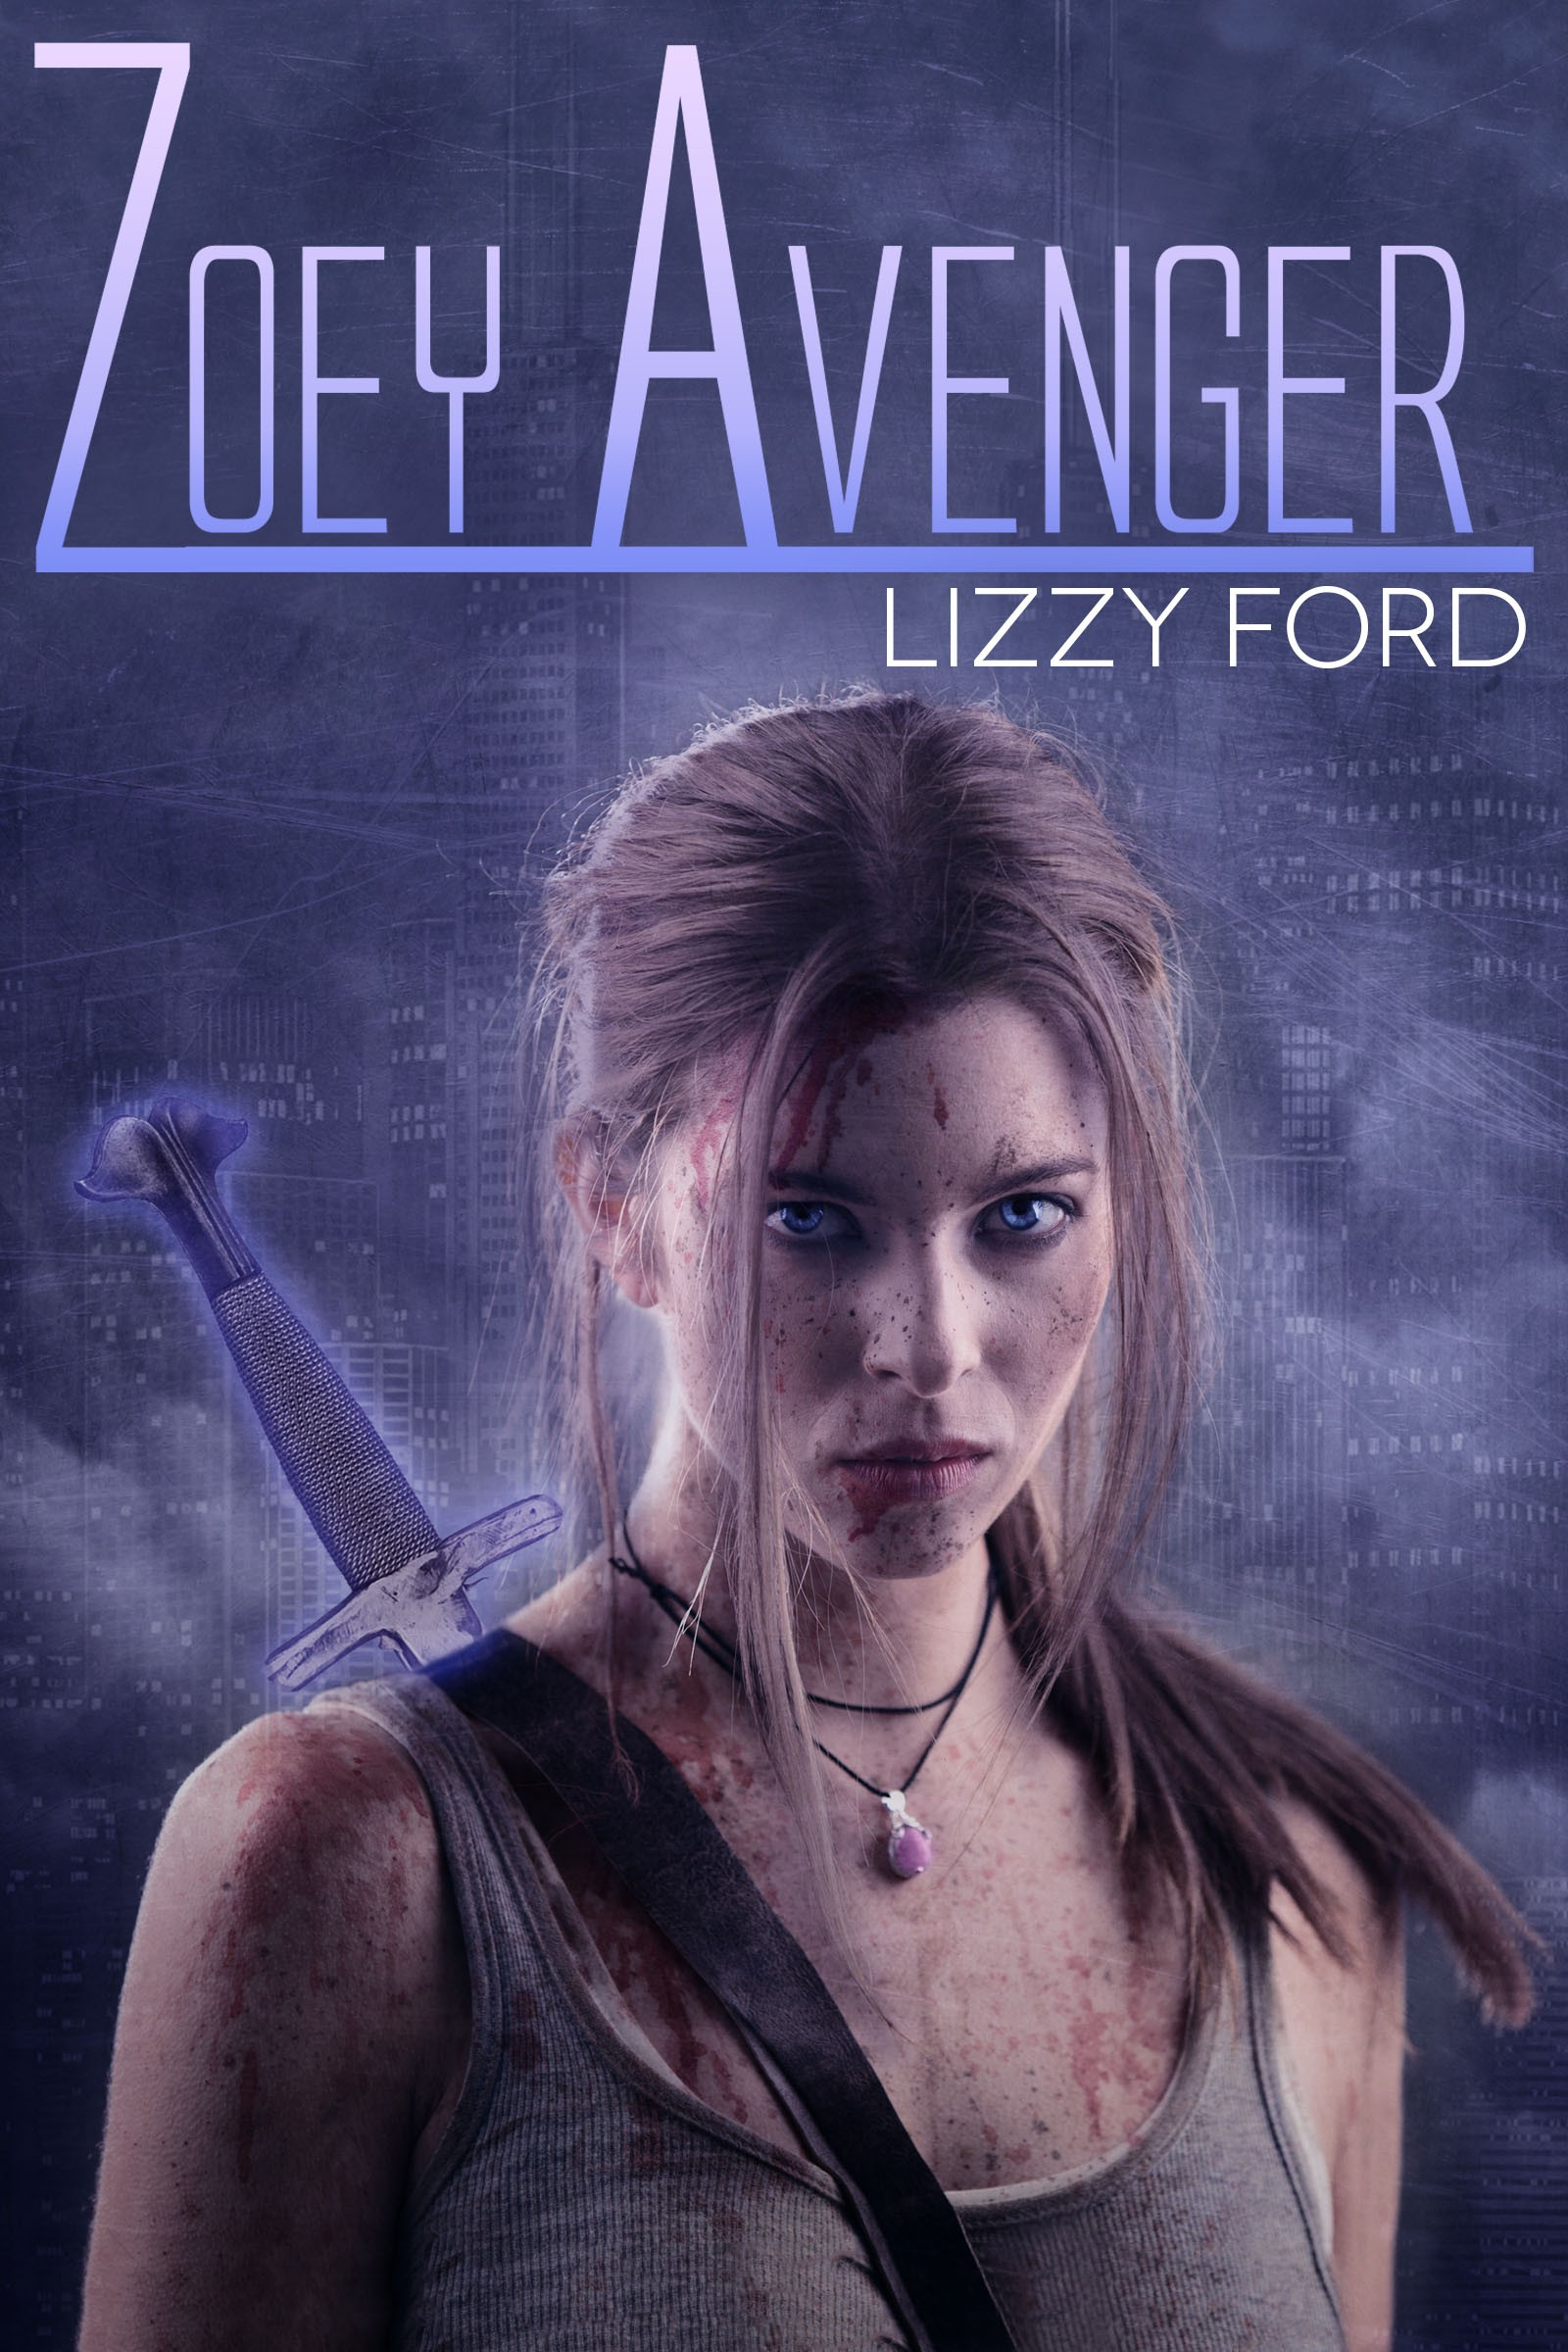 Zoey Avenger by Lizzy Ford